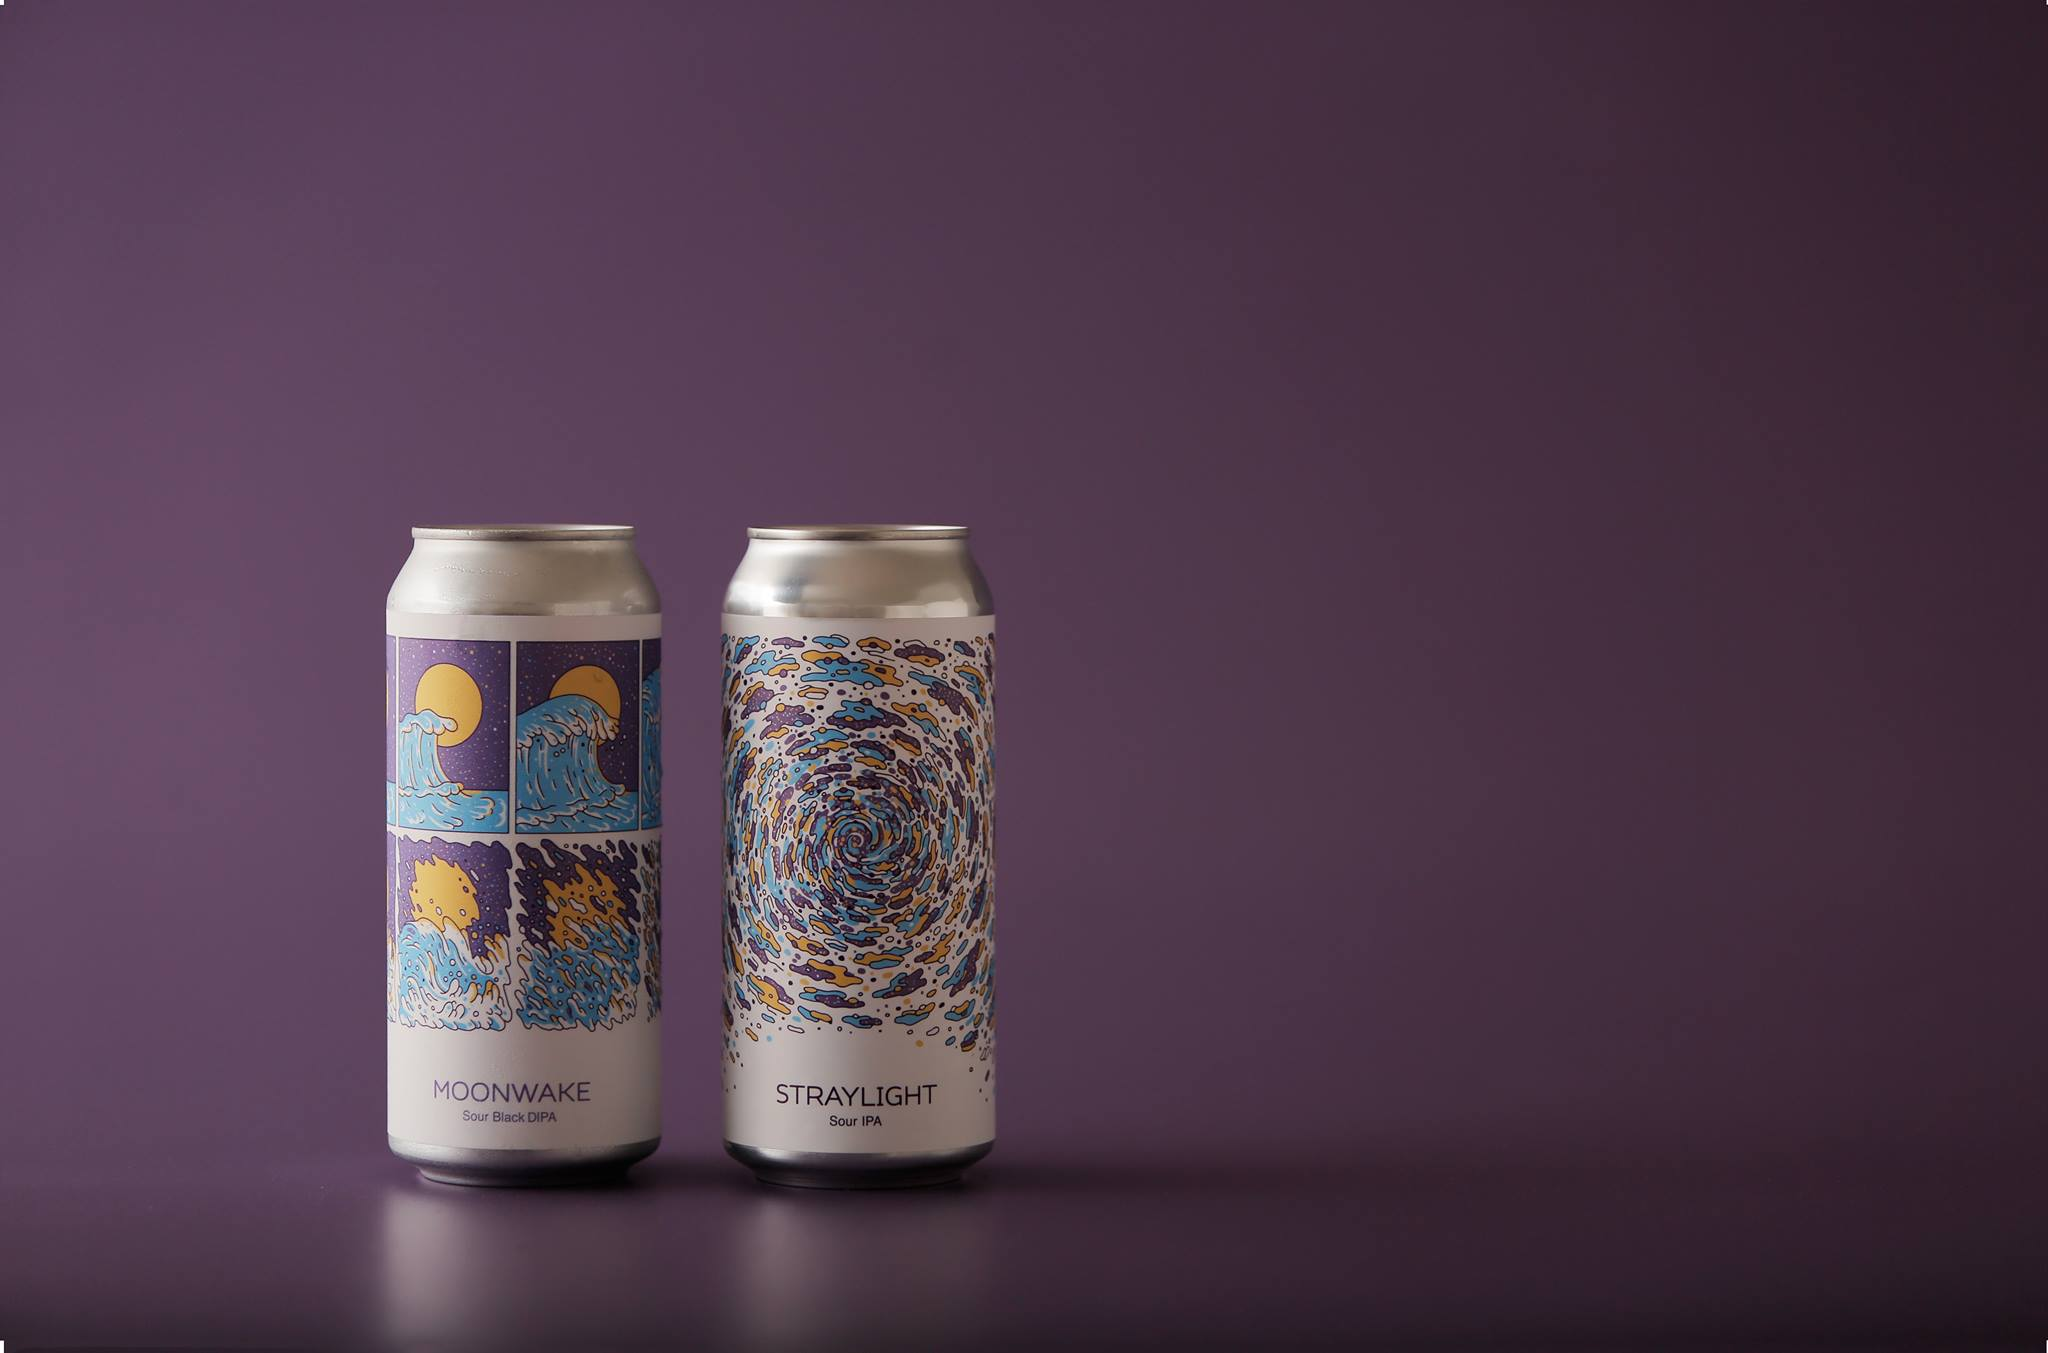 Photo of Moonwake and Straylight cans